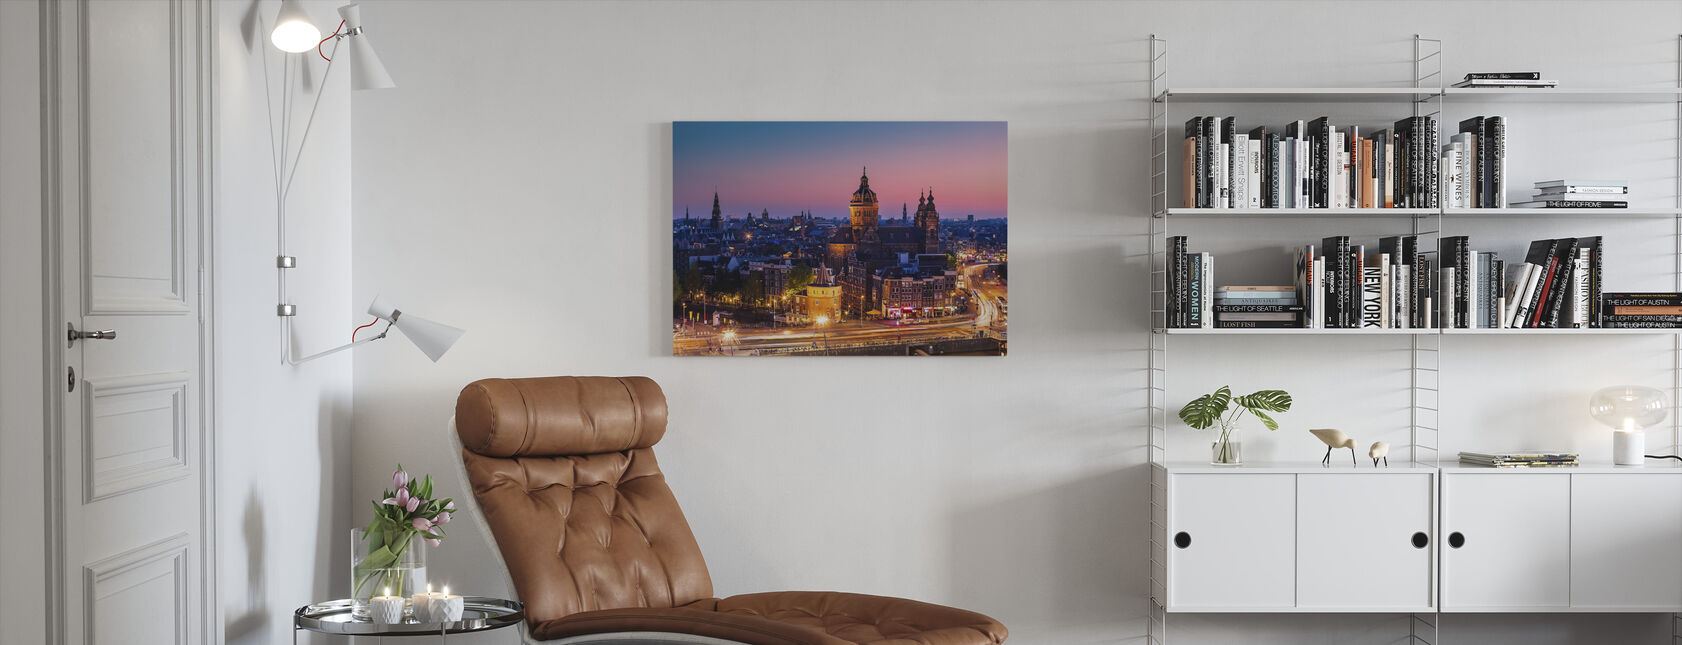 Amsterdam City - Canvas print - Living Room